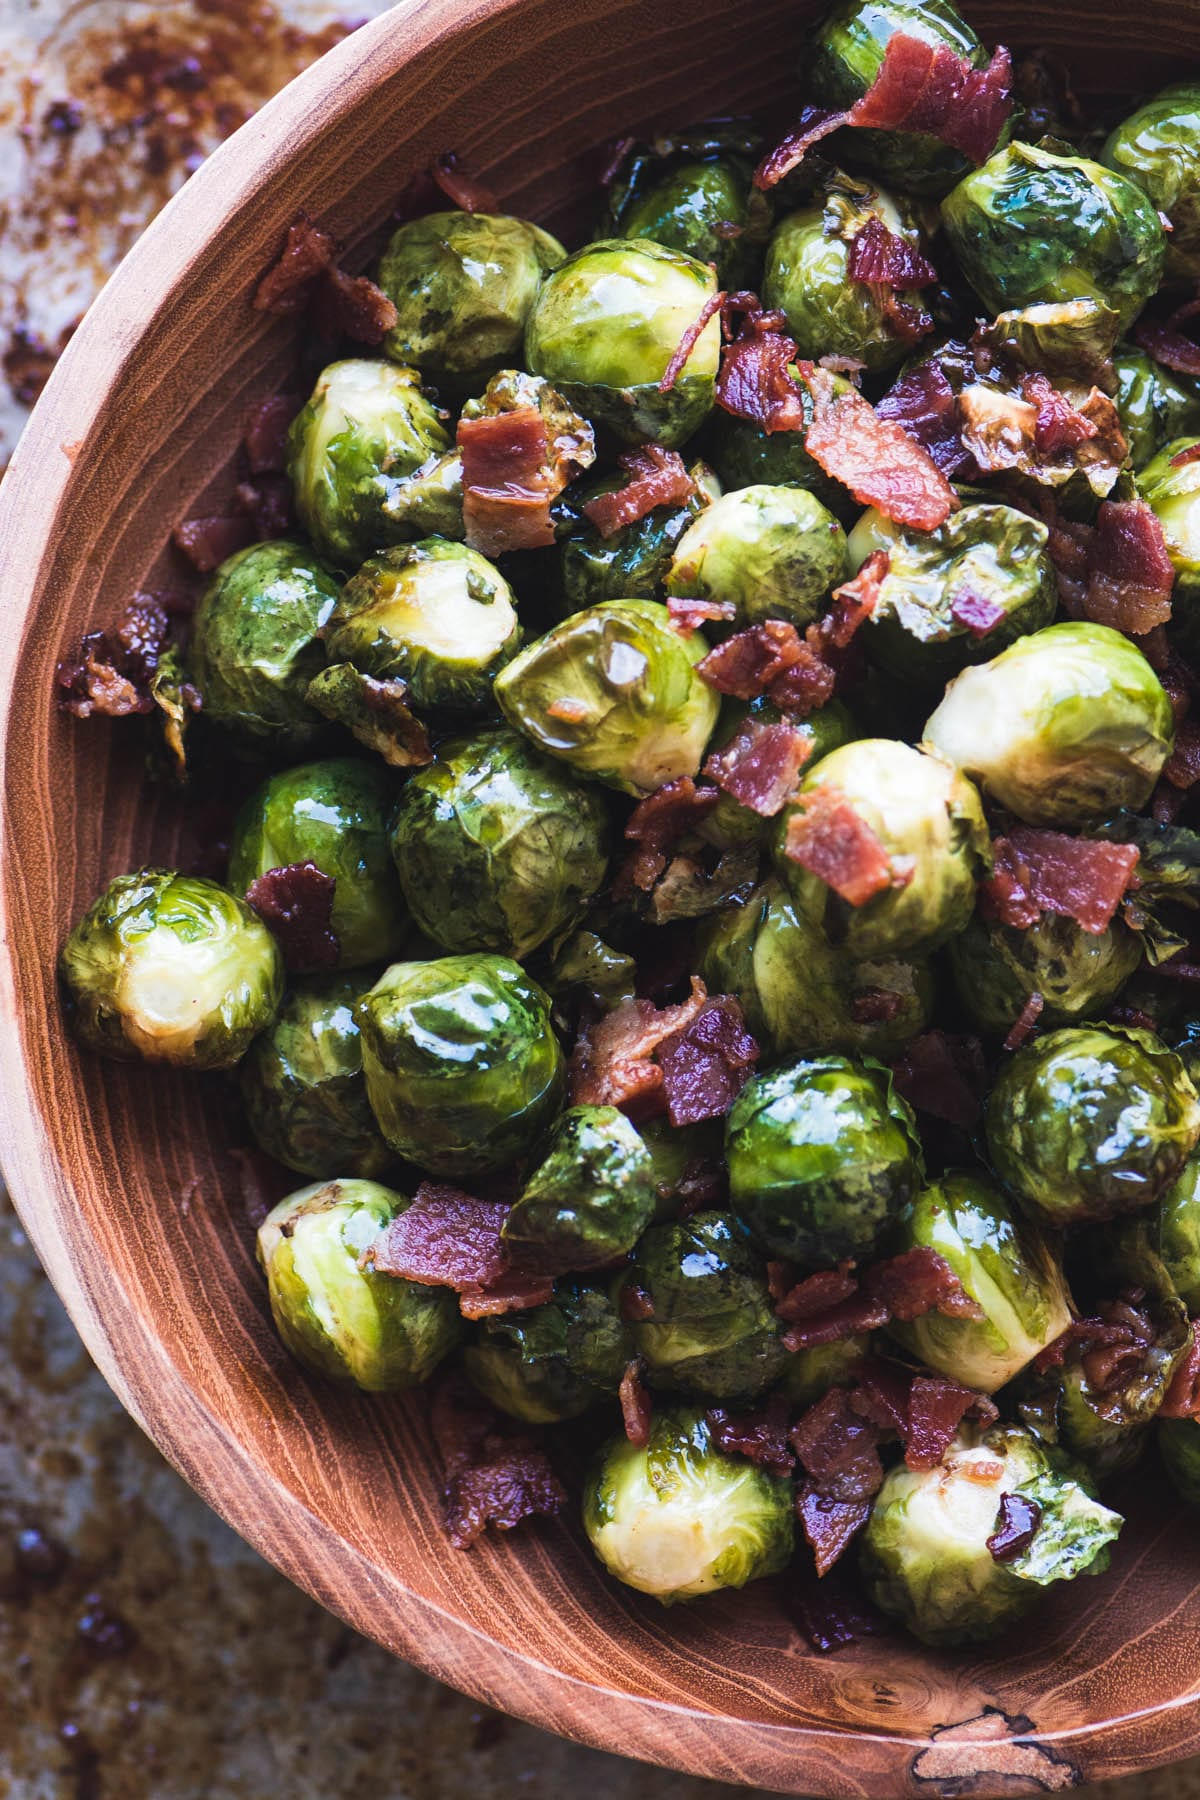 Maple Candied Brussels Sprouts with Bacon in a wooden bowl